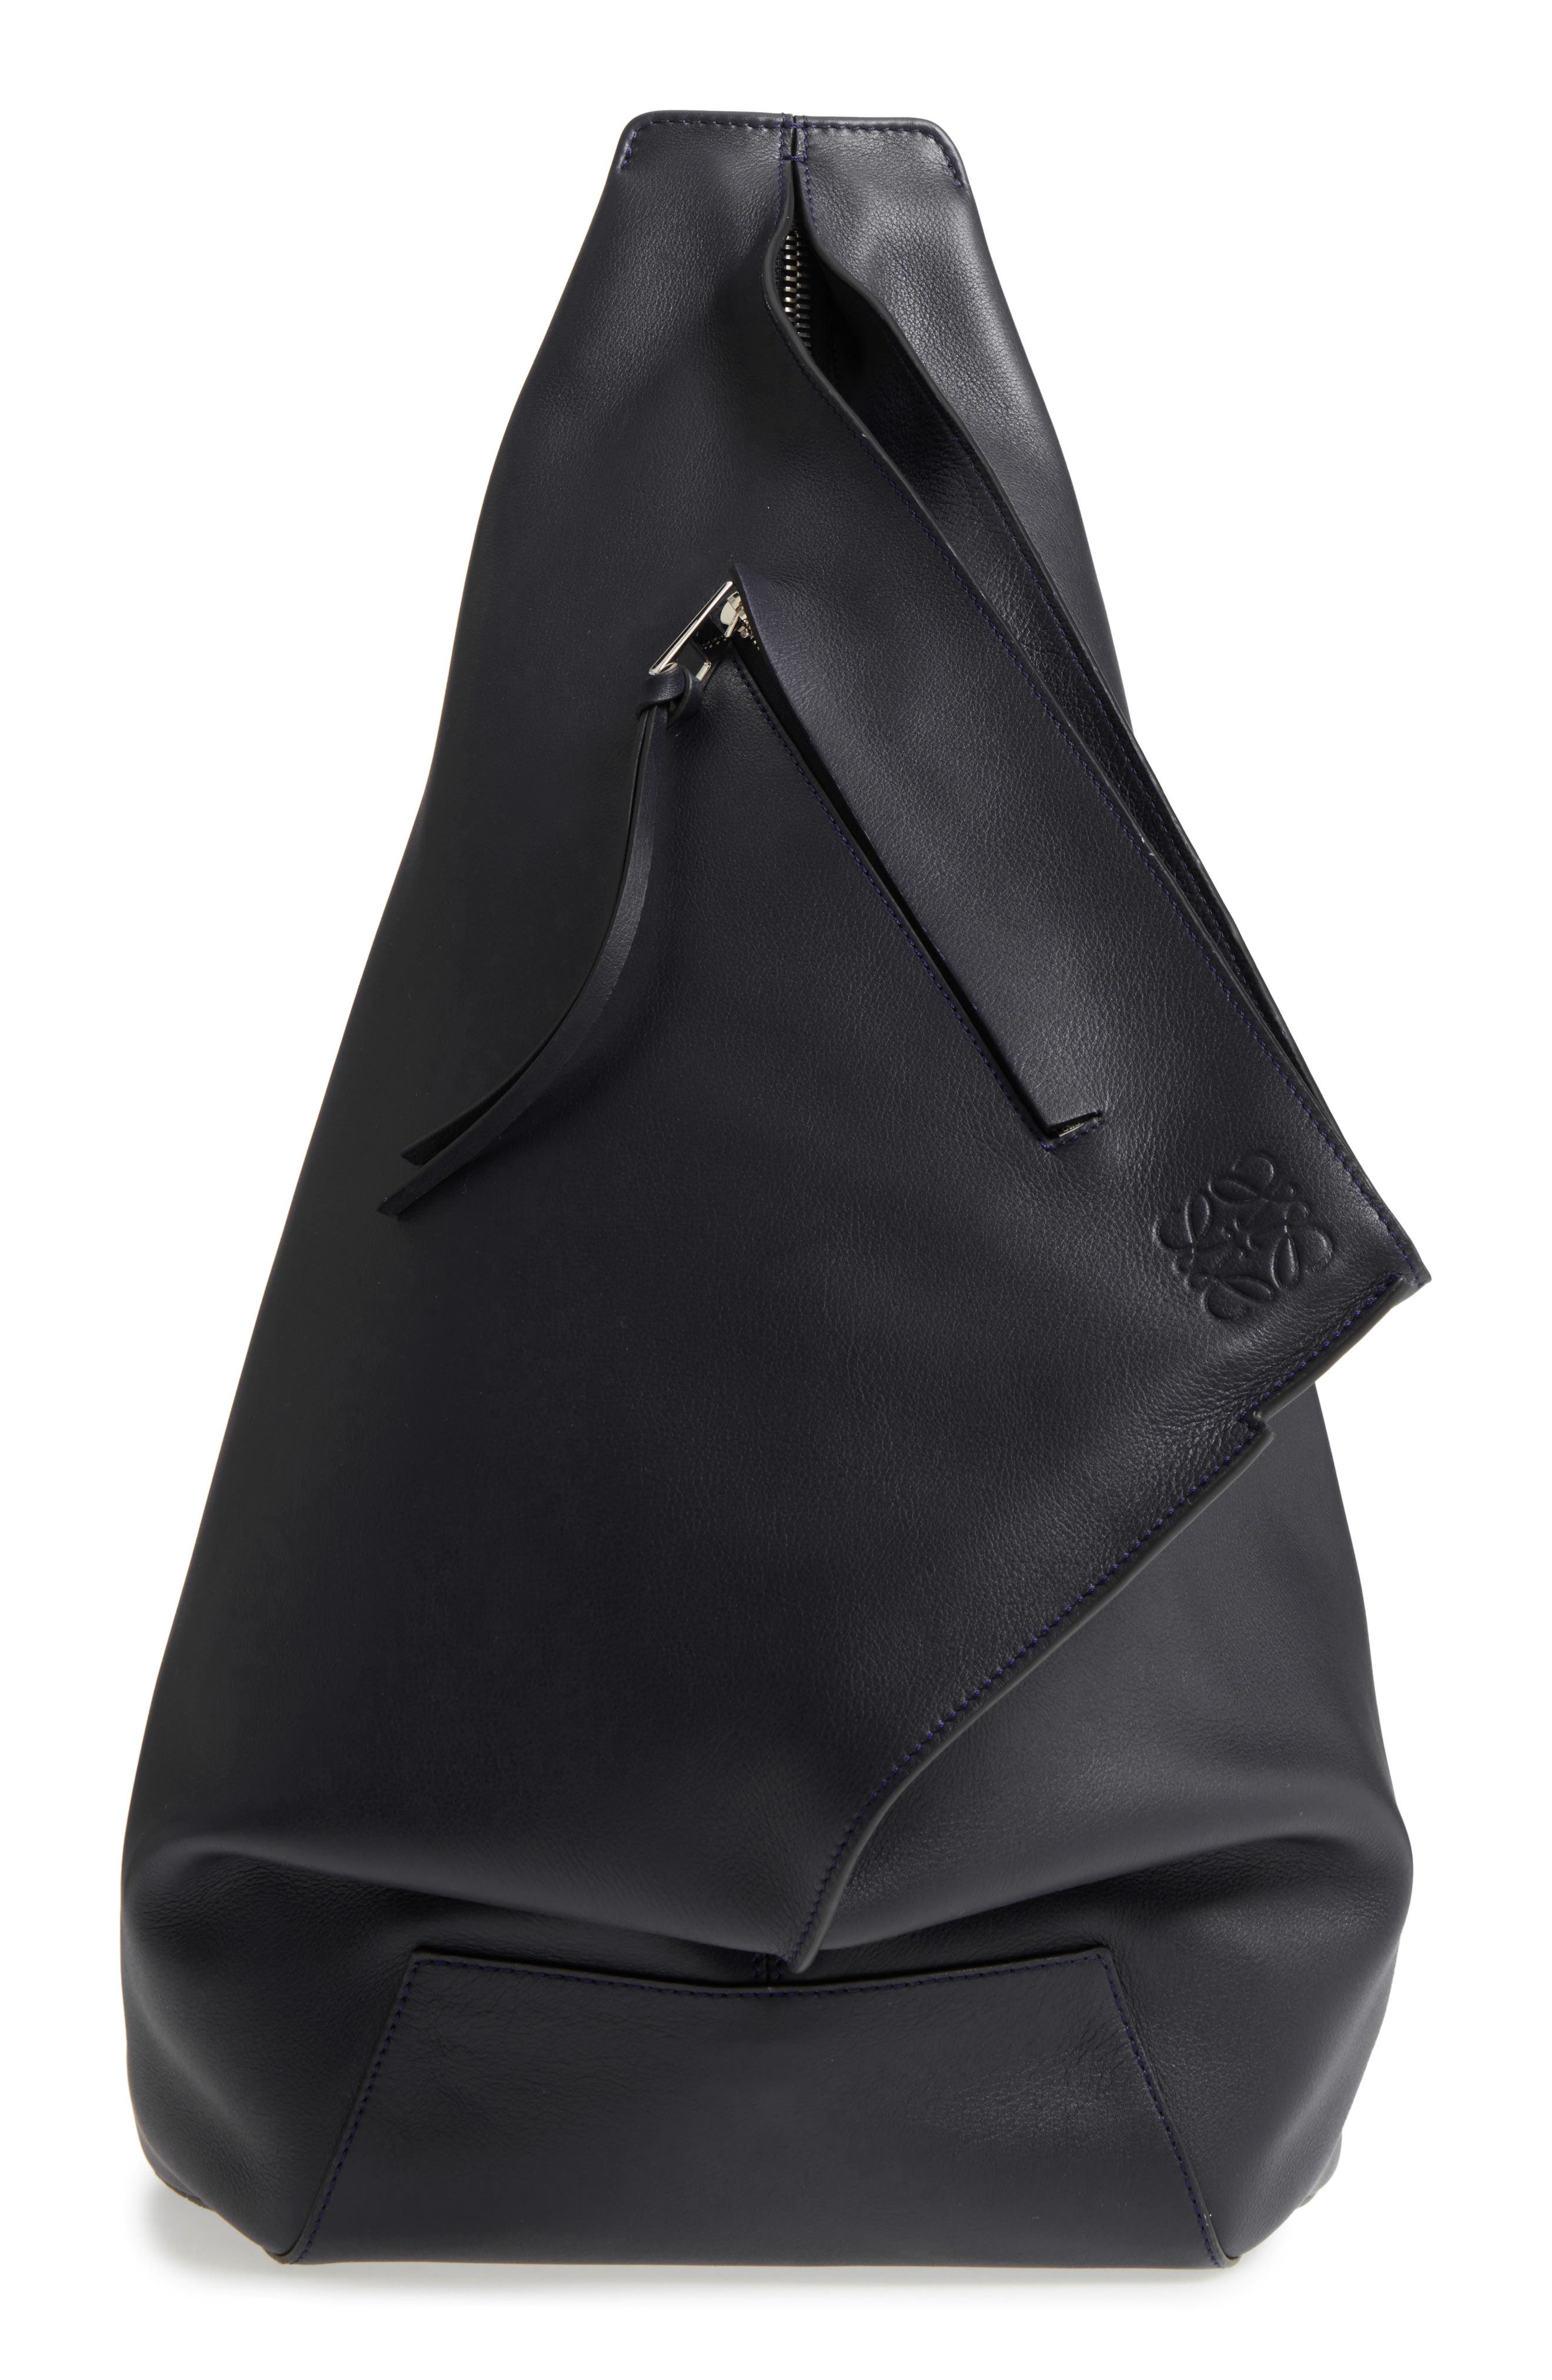 Anton Leather Sling Pack,                             Main thumbnail 1, color,                             001